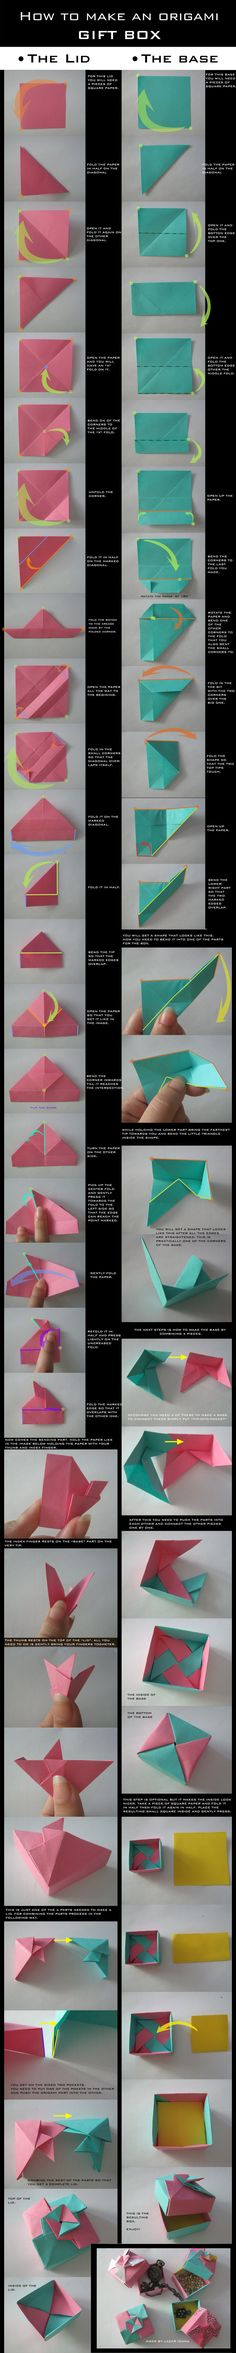 TUTORIAL: Origami Gift Box by DarkUmah.deviantart.com on @deviantART